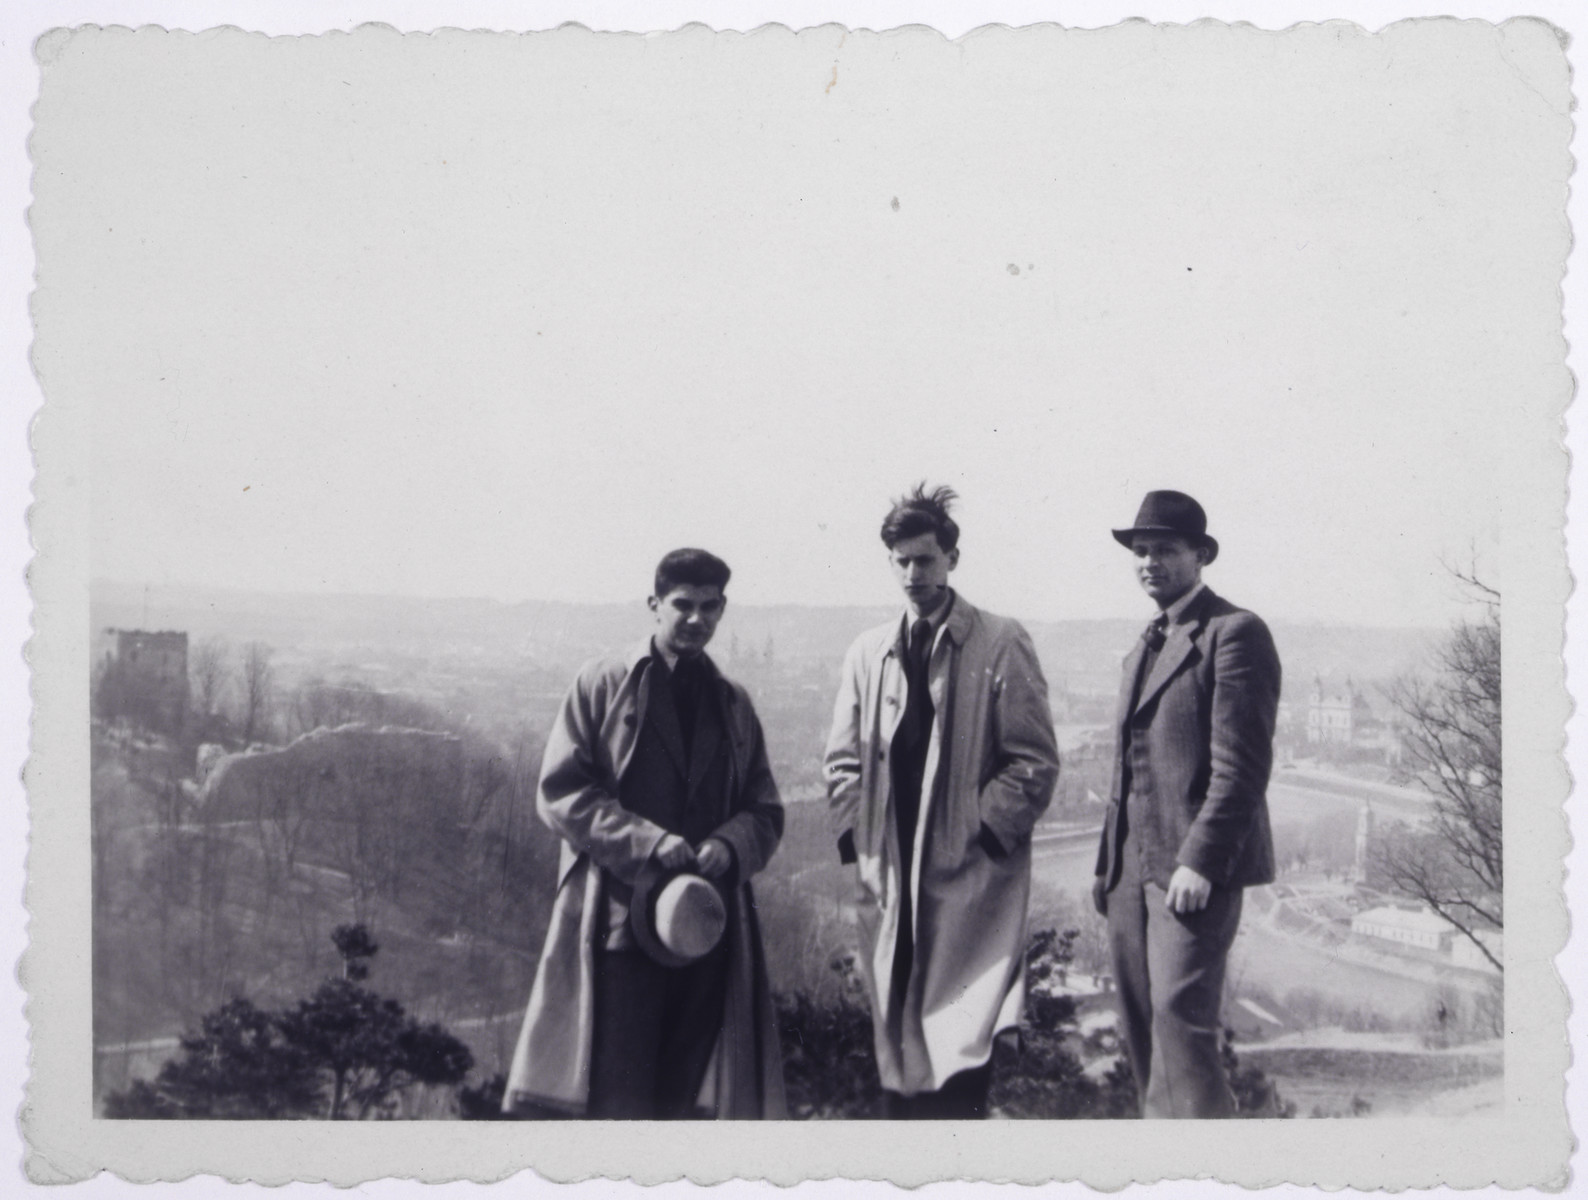 Portrait of three Jewish refugees [possibly in Vilna].  Pictured left to right are Jan Goldstein, Markus Nowogrodzki, and Mr. Shimkin.